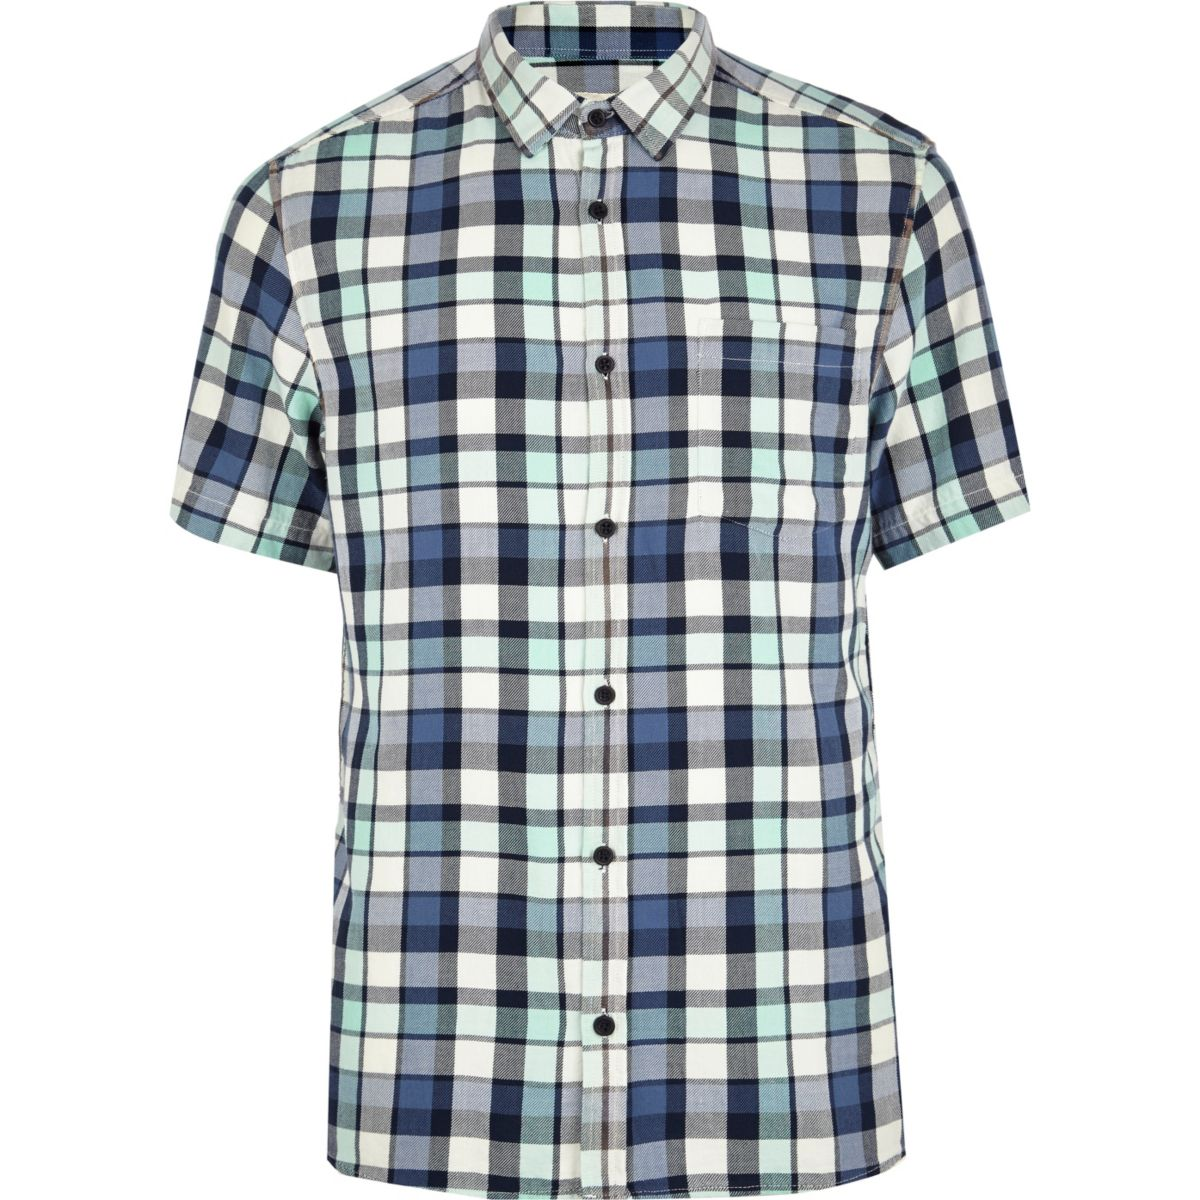 Black washed check short sleeve shirt